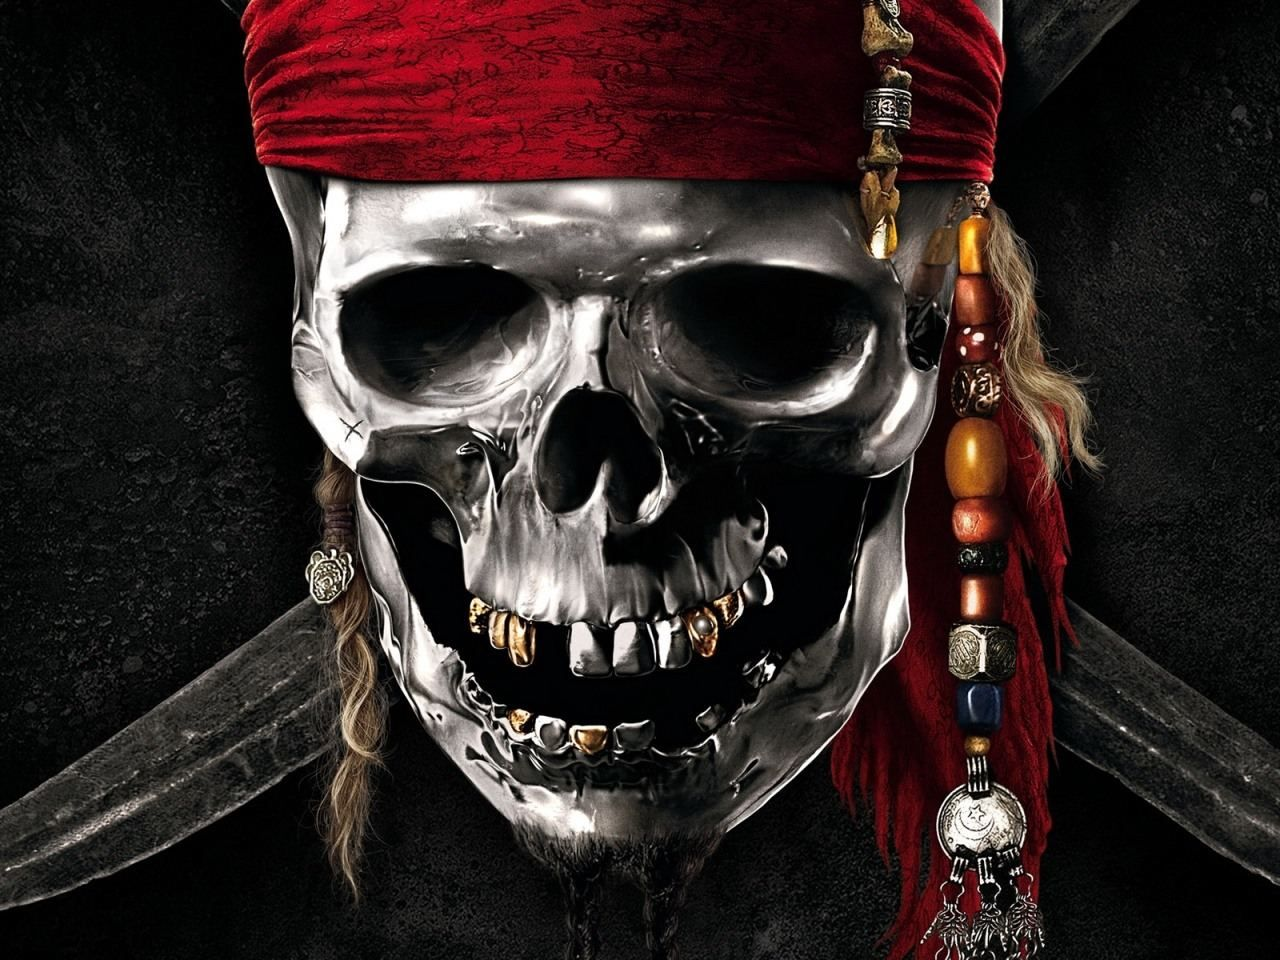 Pirates Of The Caribbean Skull Wallpaper Desktop Jgv In